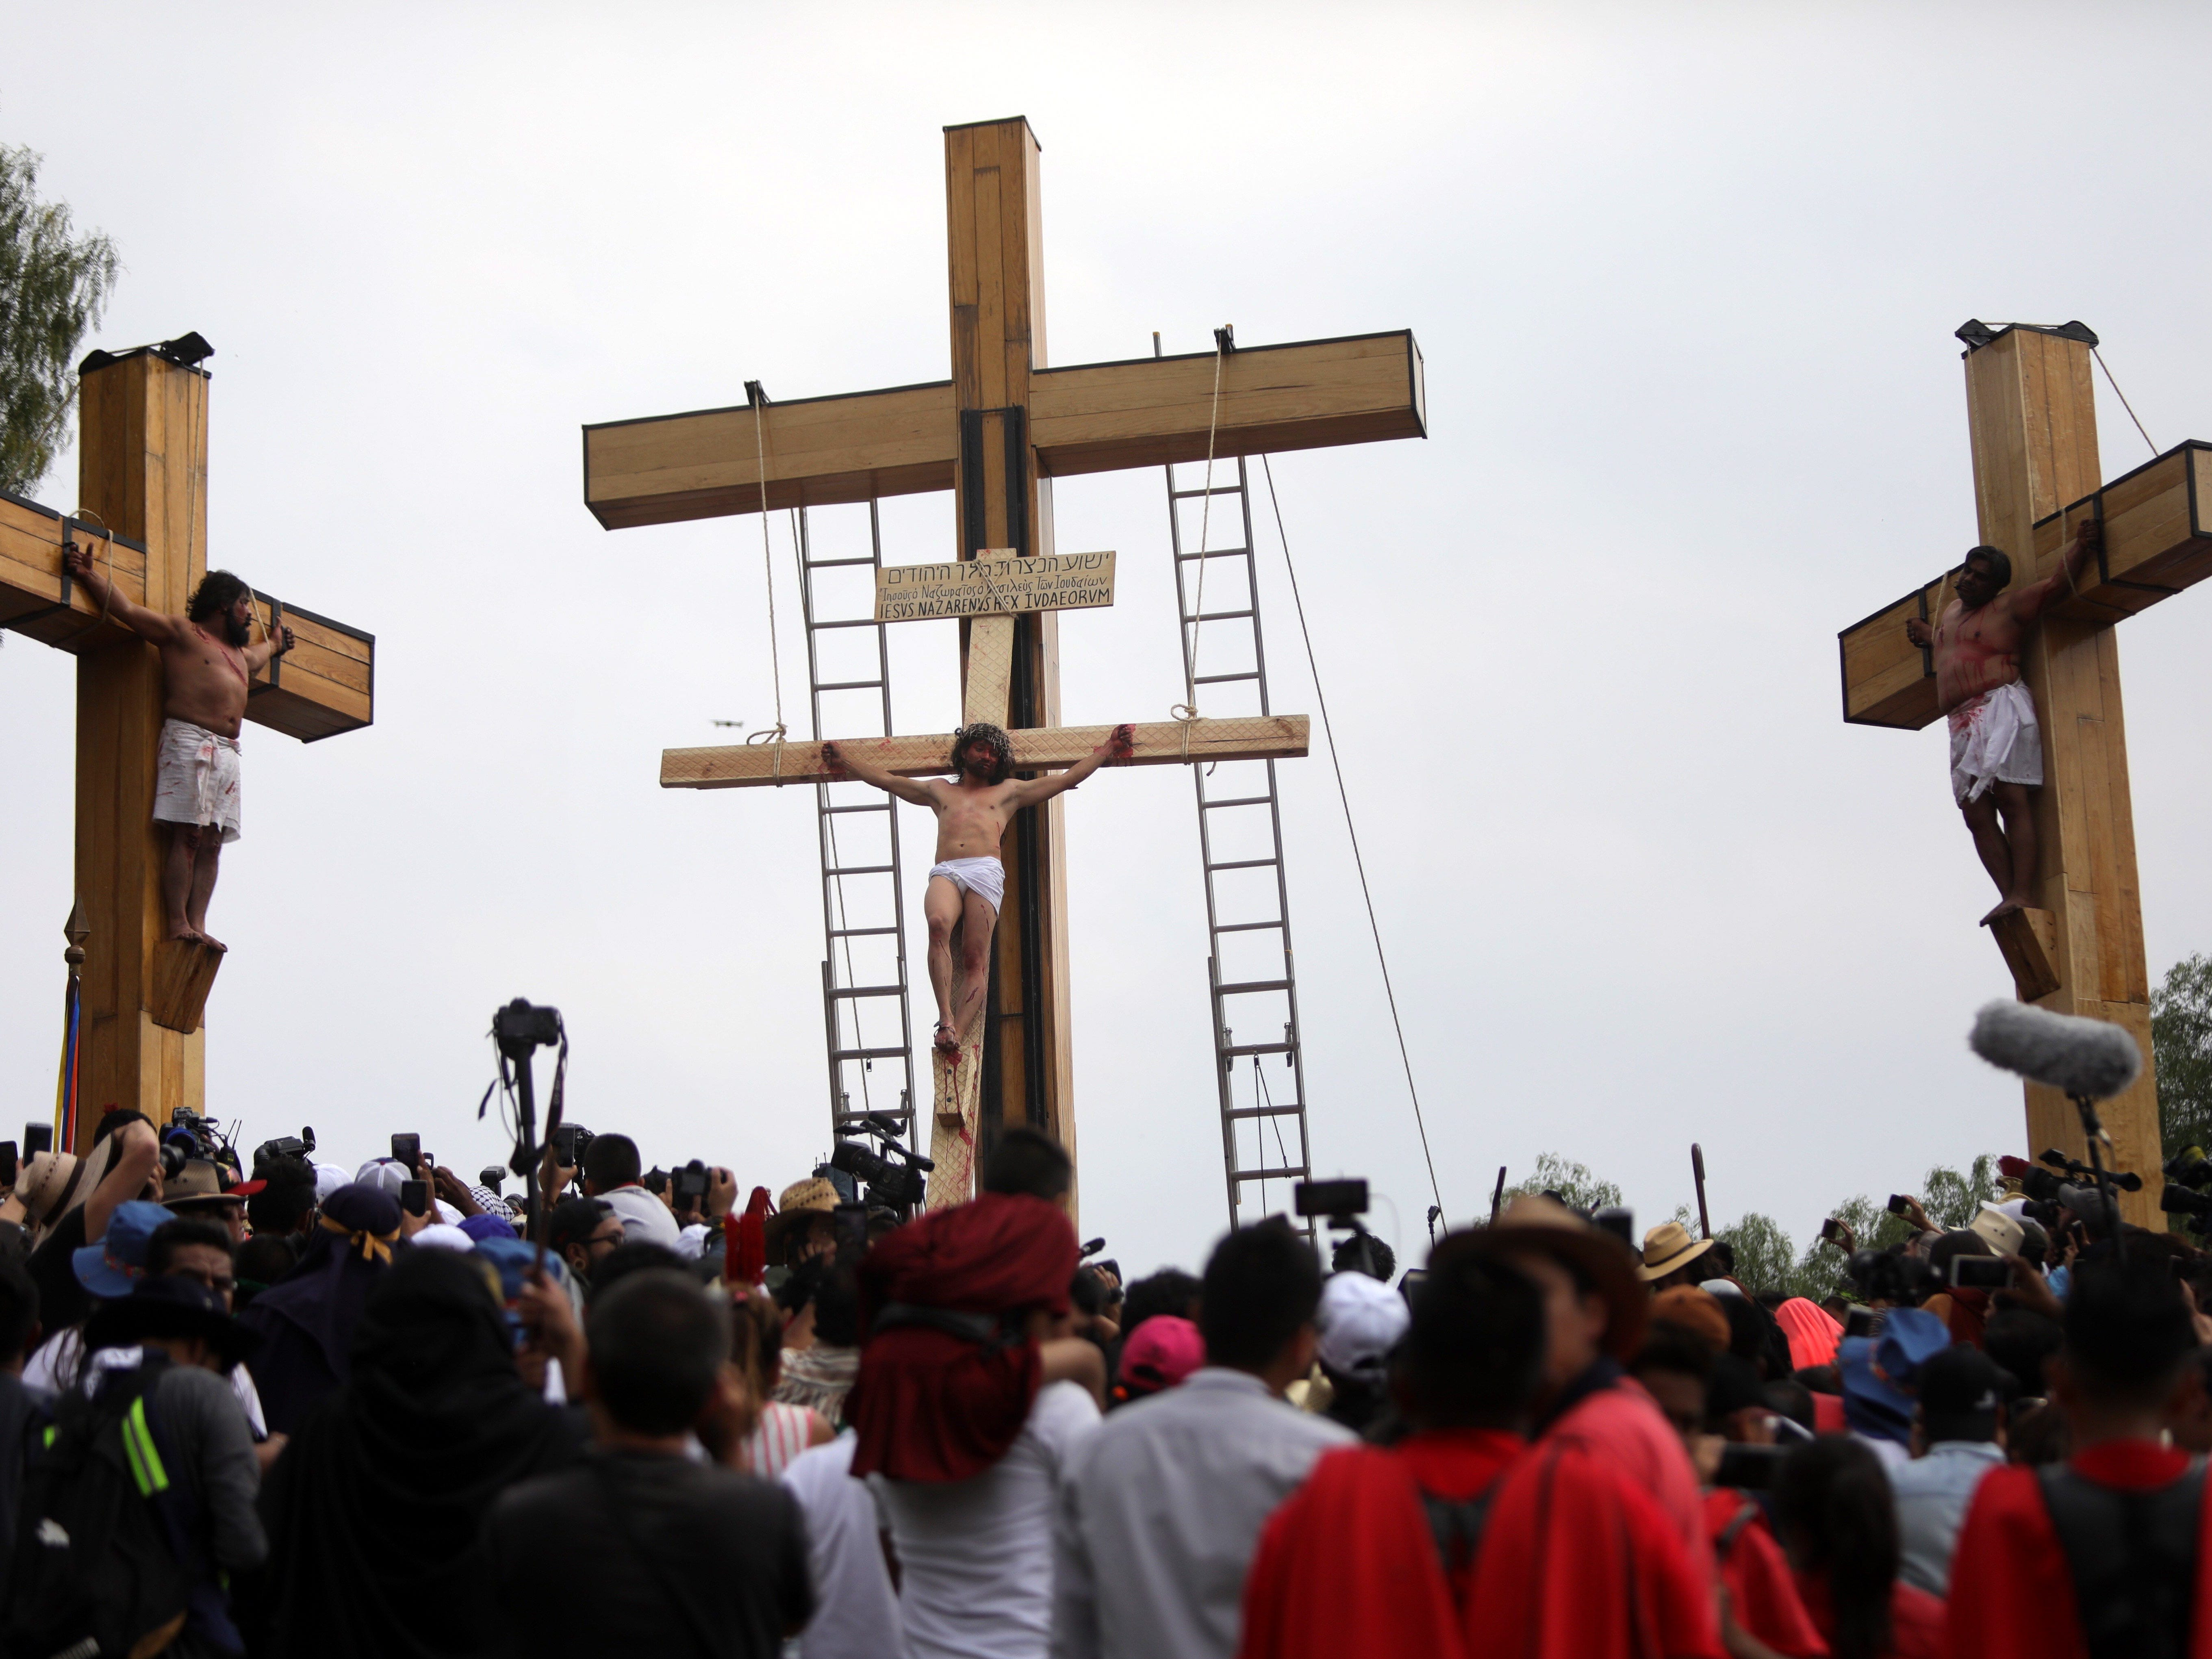 Hundreds of people participate in the representation of the viacrucis, in Iztapalapa, Mexico on April 19, 2019.